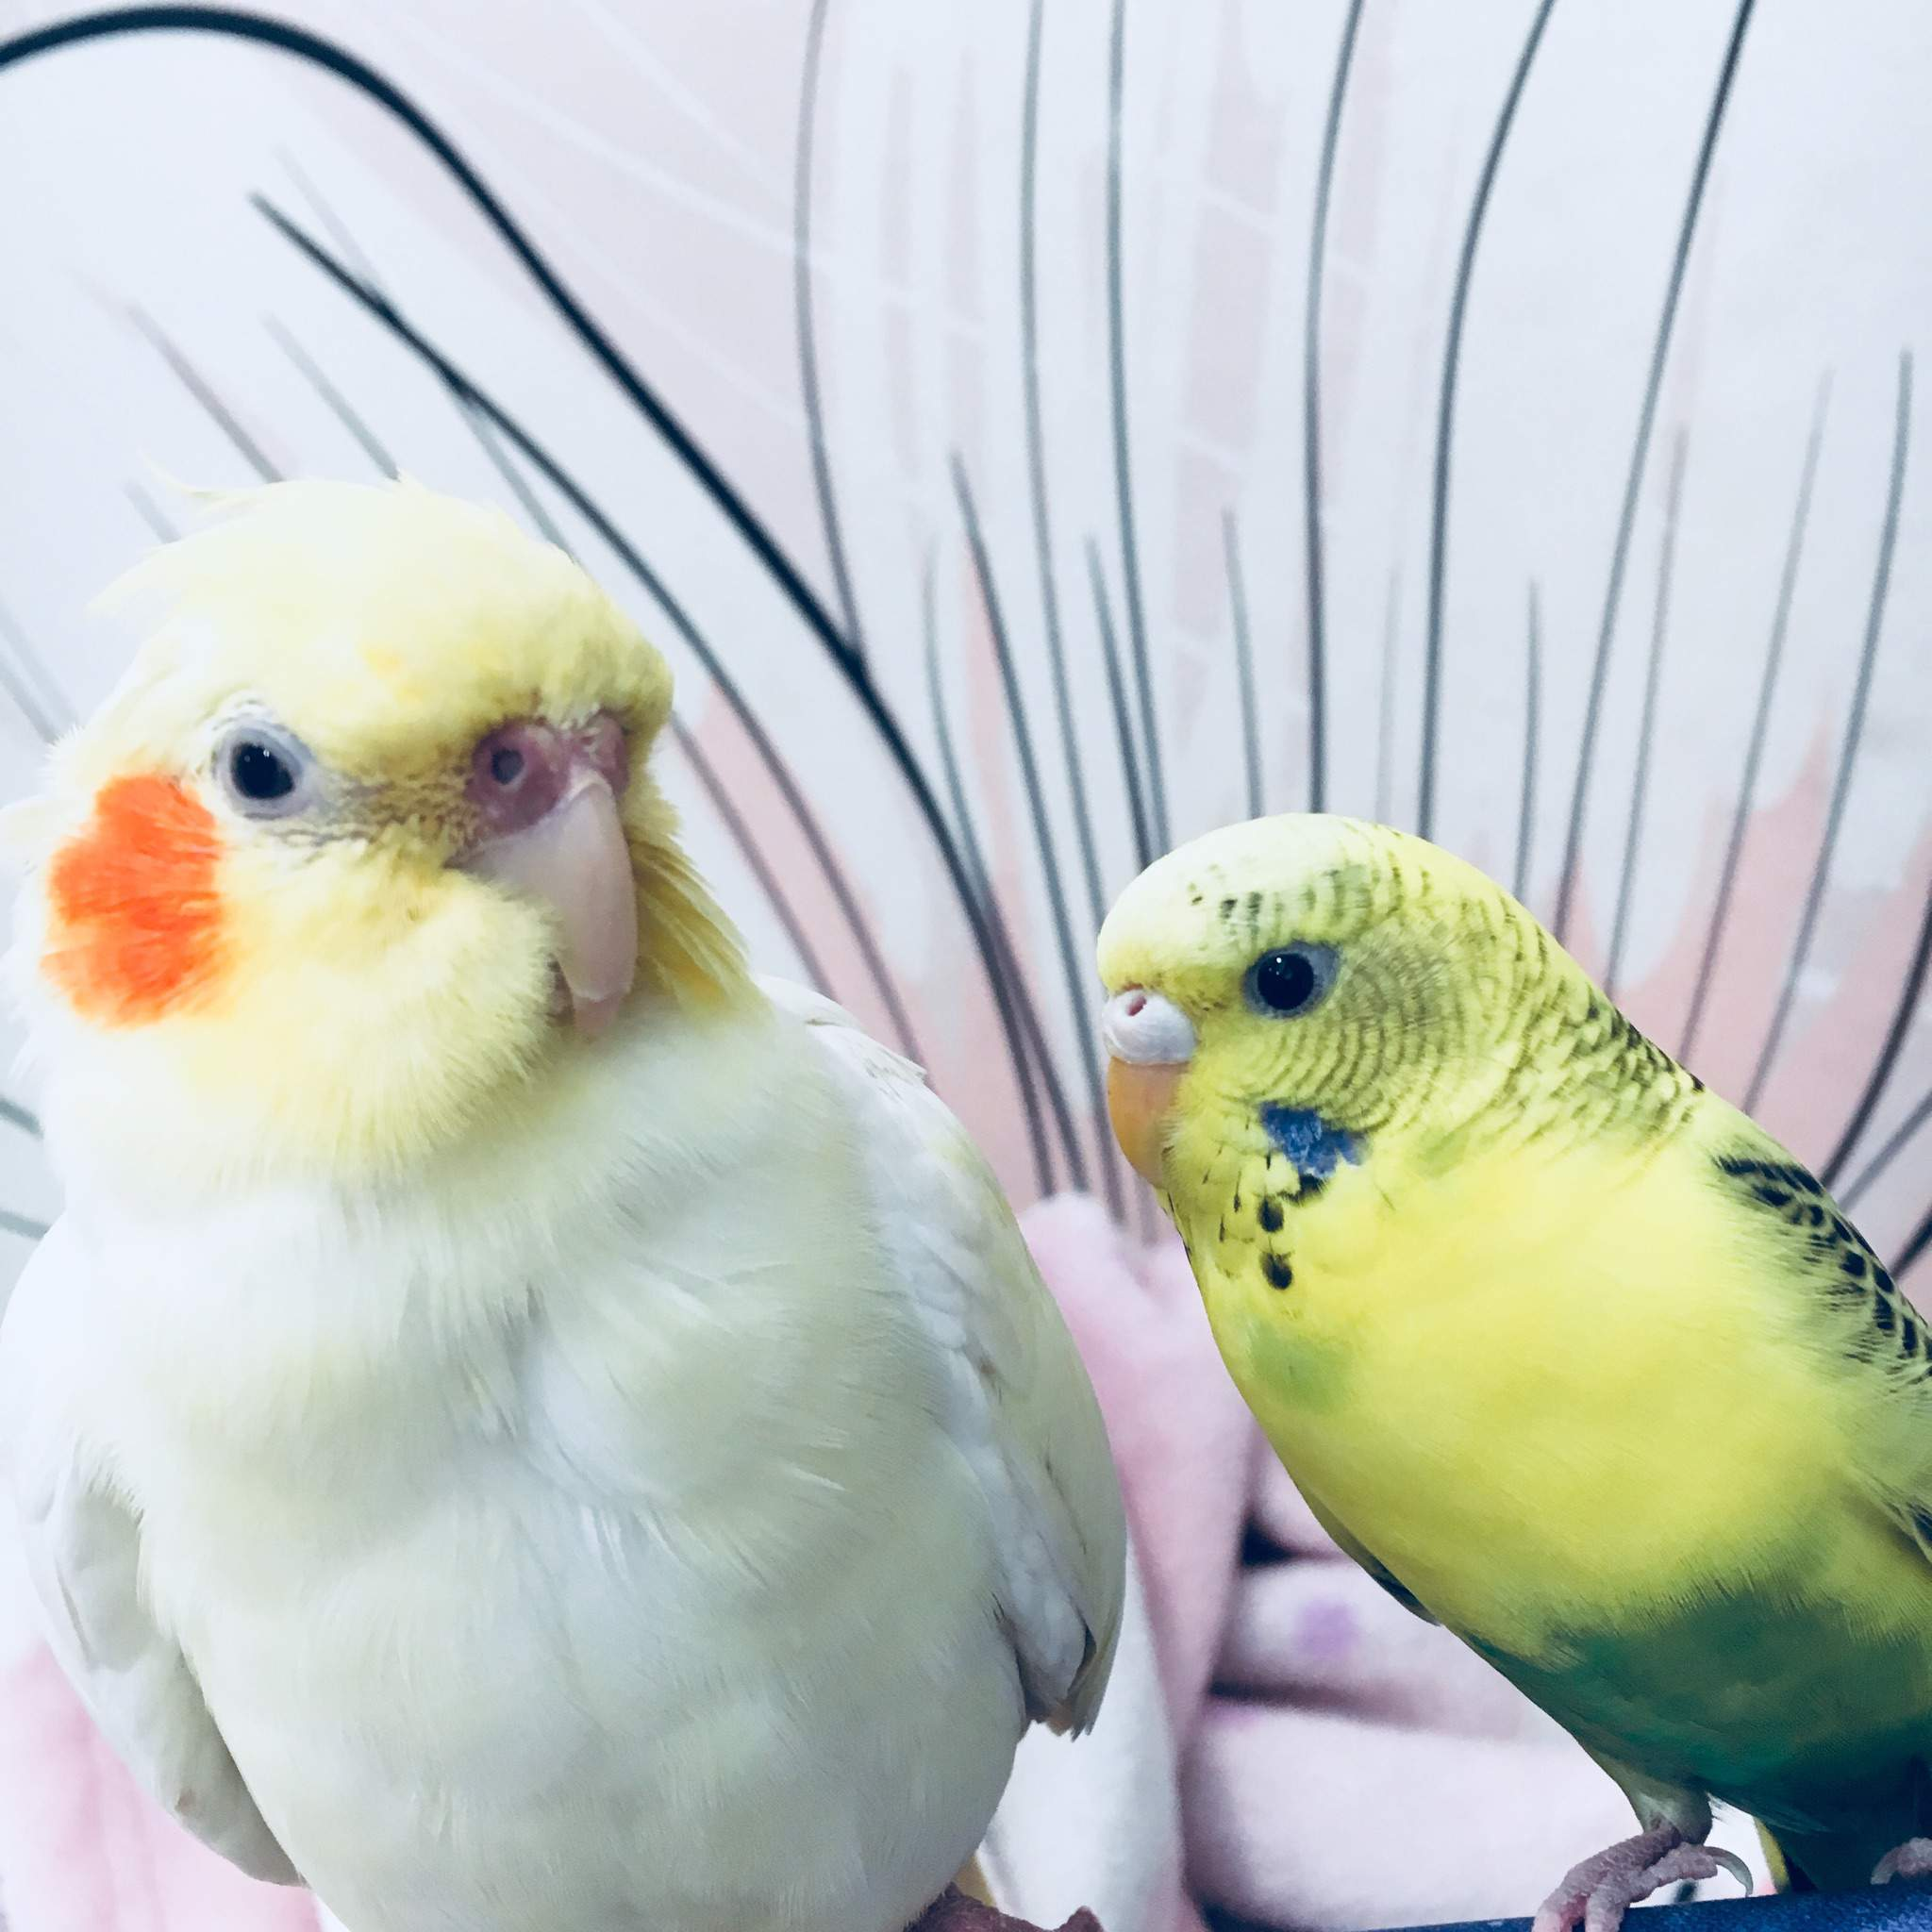 Housing cockatiels and budgies together | Birds Amino Amino